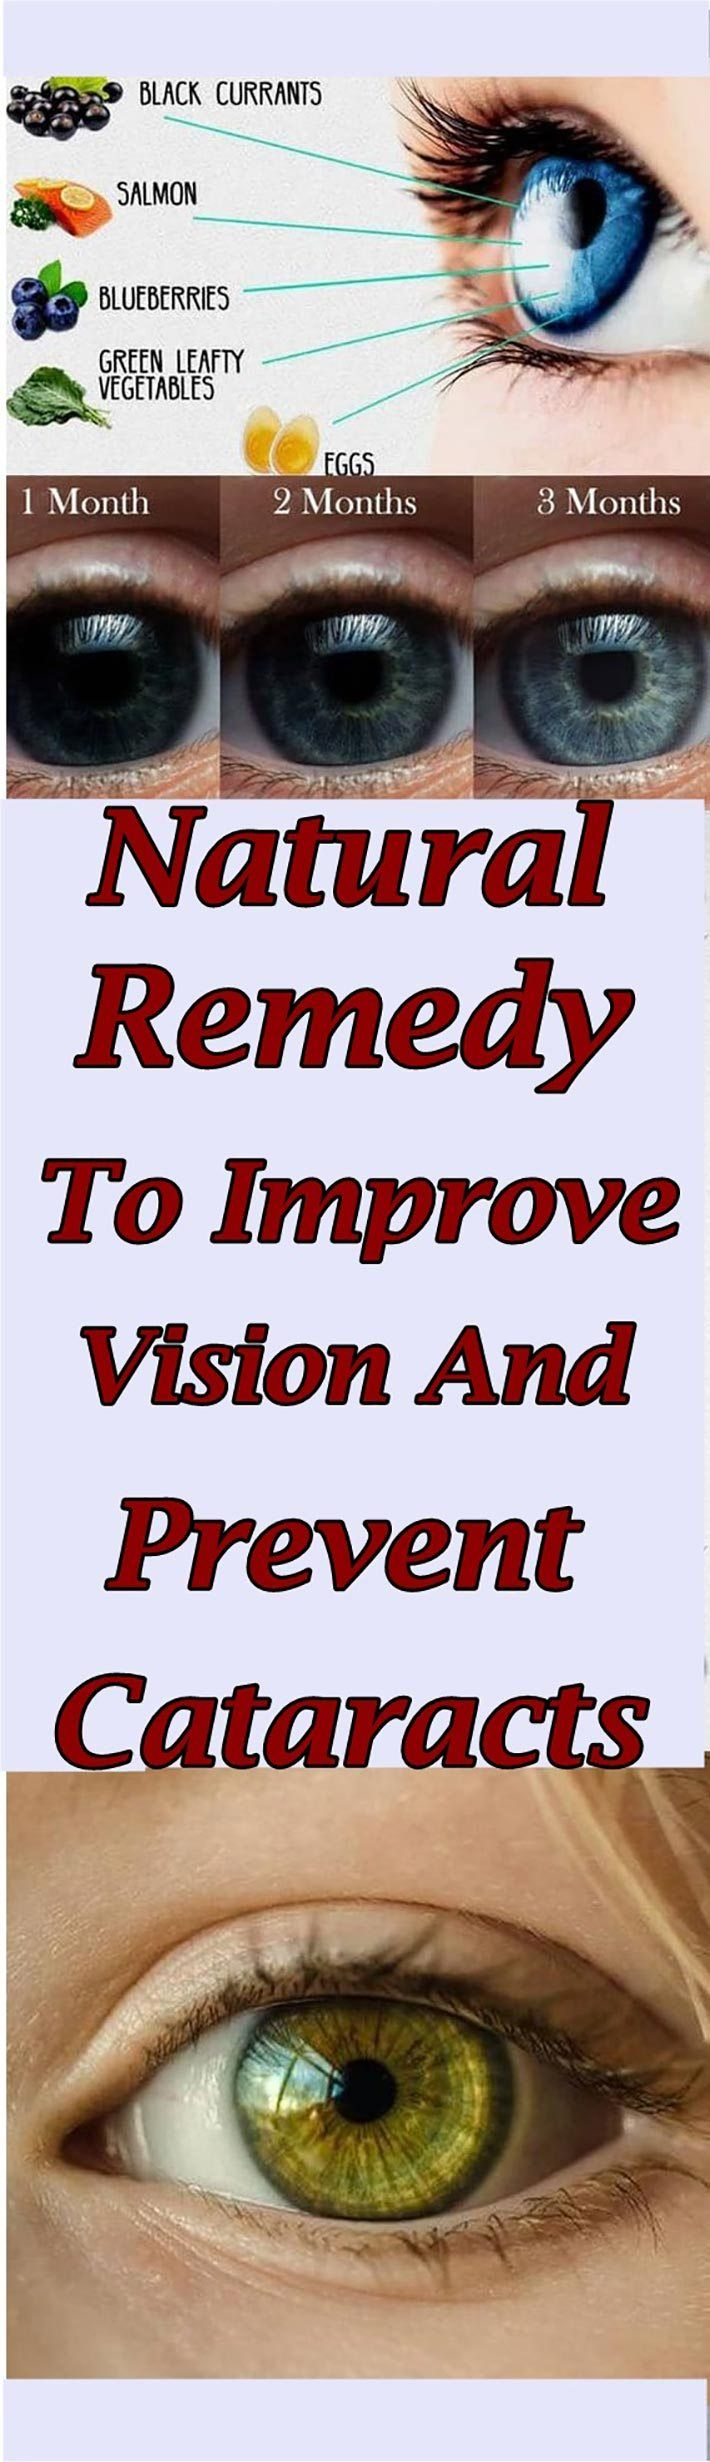 Natural Remedy To Improve Vision And Prevent Cataracts #health #eyes #cataractsLori Forker